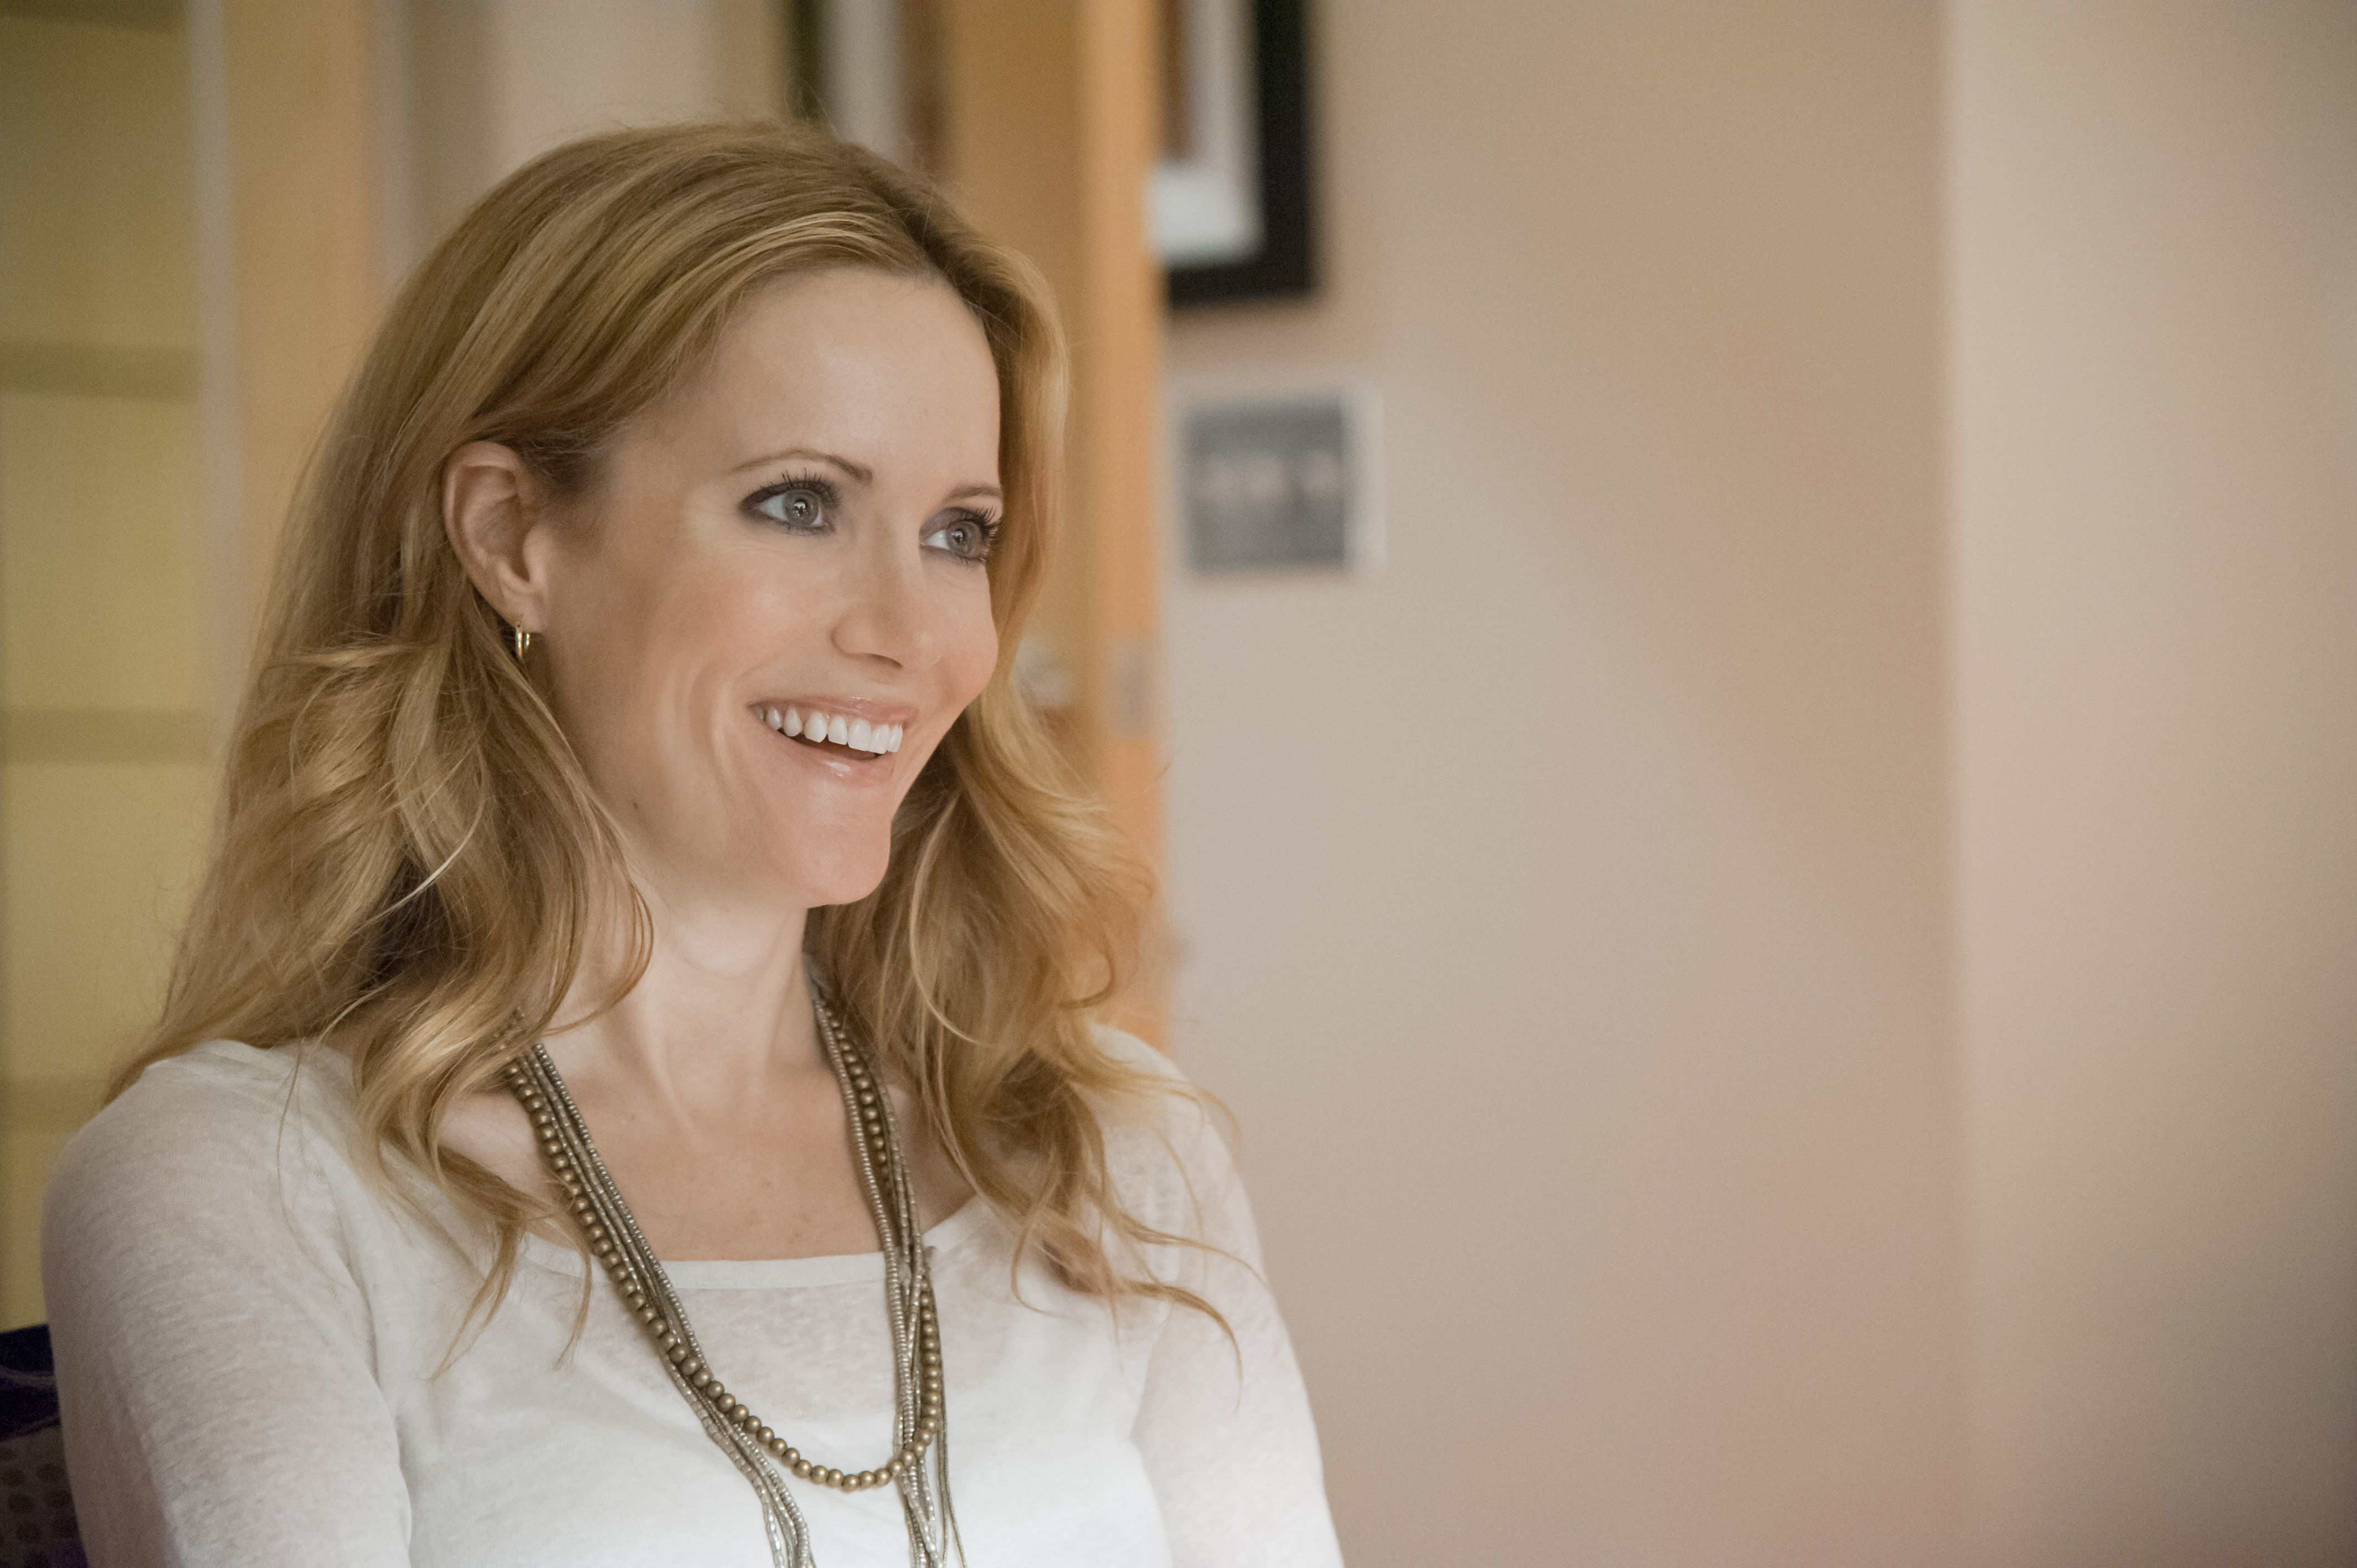 http://cdn.collider.com/wp-content/uploads/leslie-mann-this-is-40.jpg Leslie Mann Kids In This Is 40